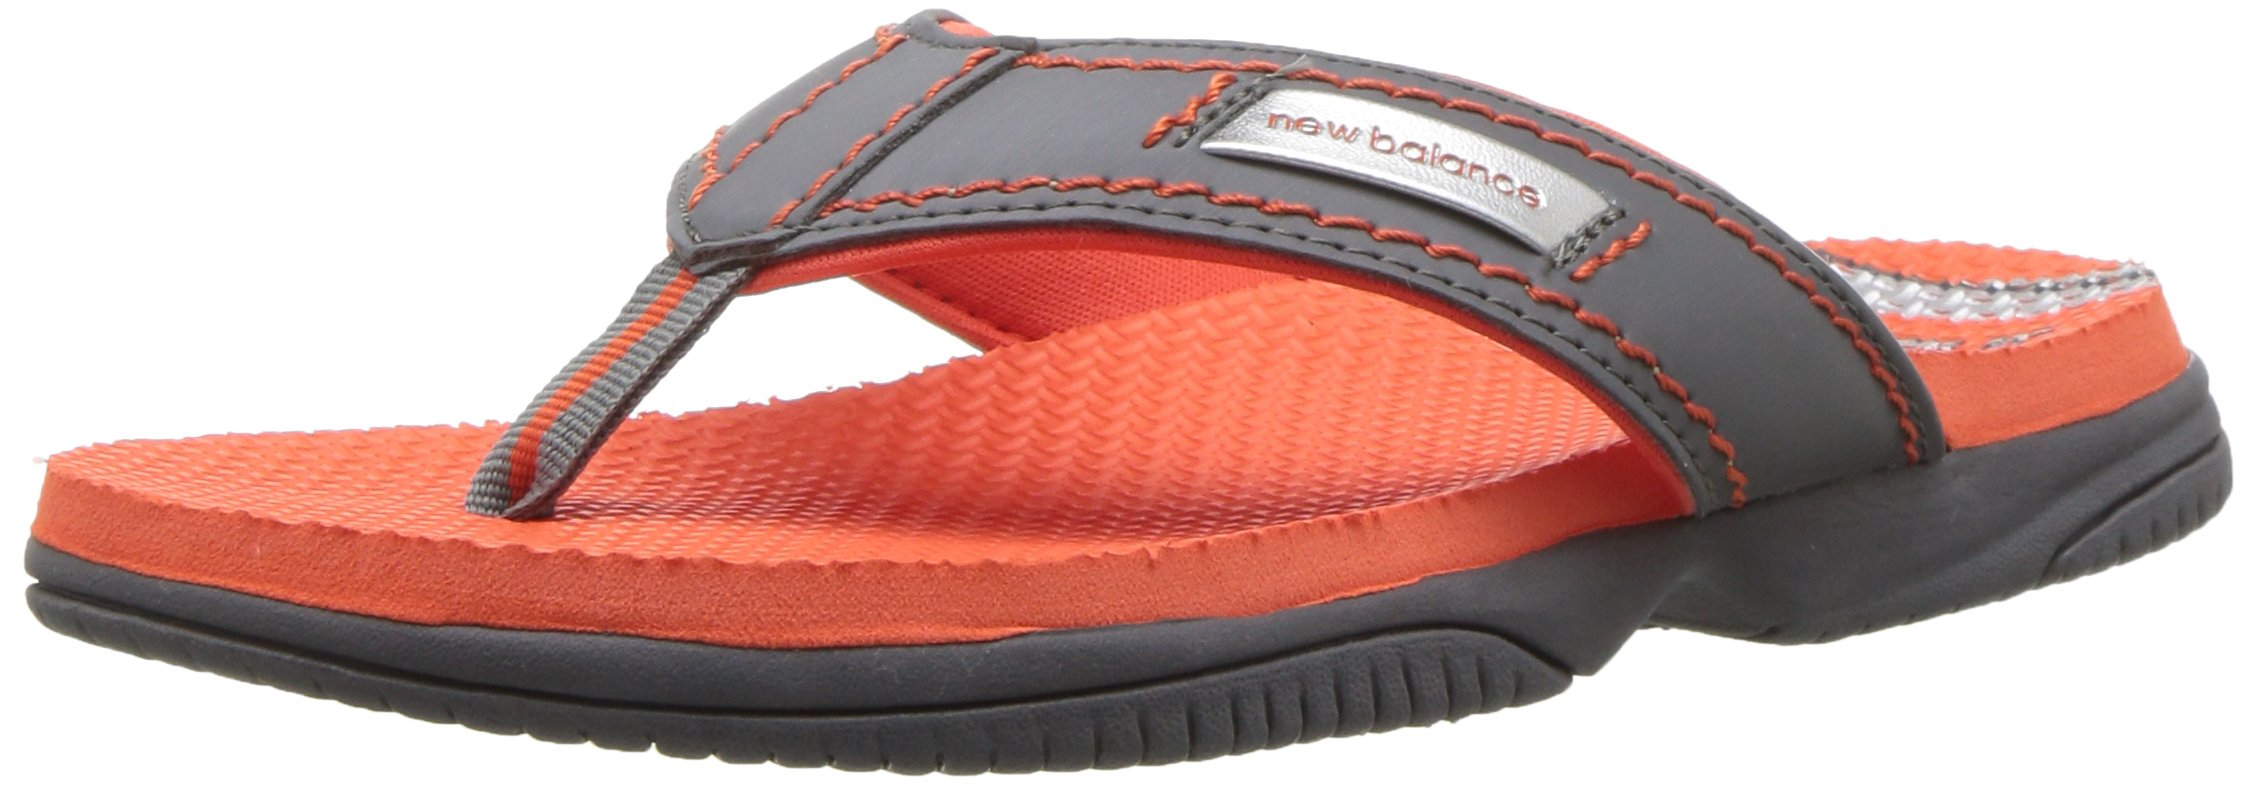 New Balance Unisex-Kids Mojo Thong Flip-Flop, Grey/Orange, P13 M US Little Kid